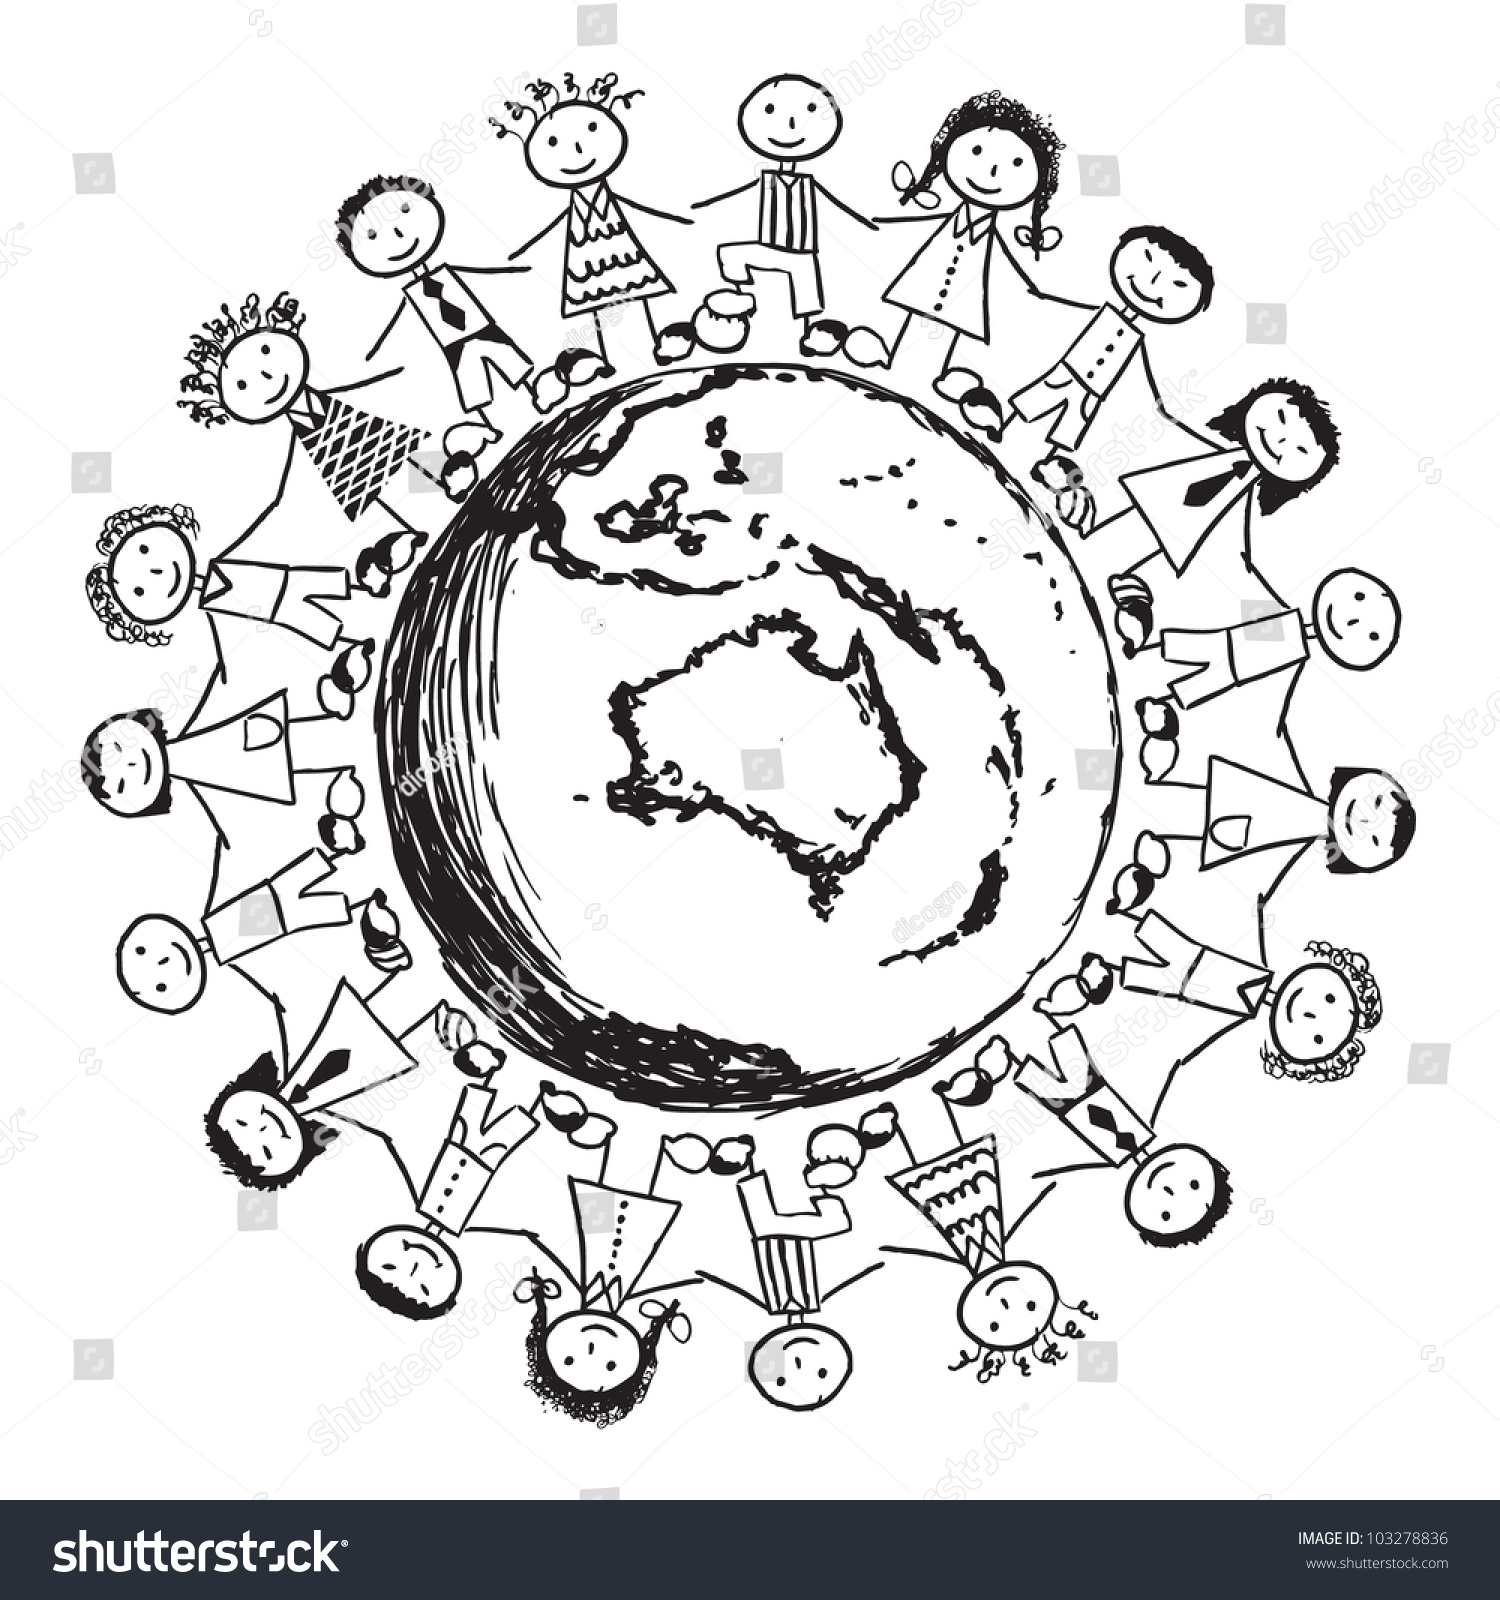 Children Around The World Coloring Page Amazing Chilen Of The